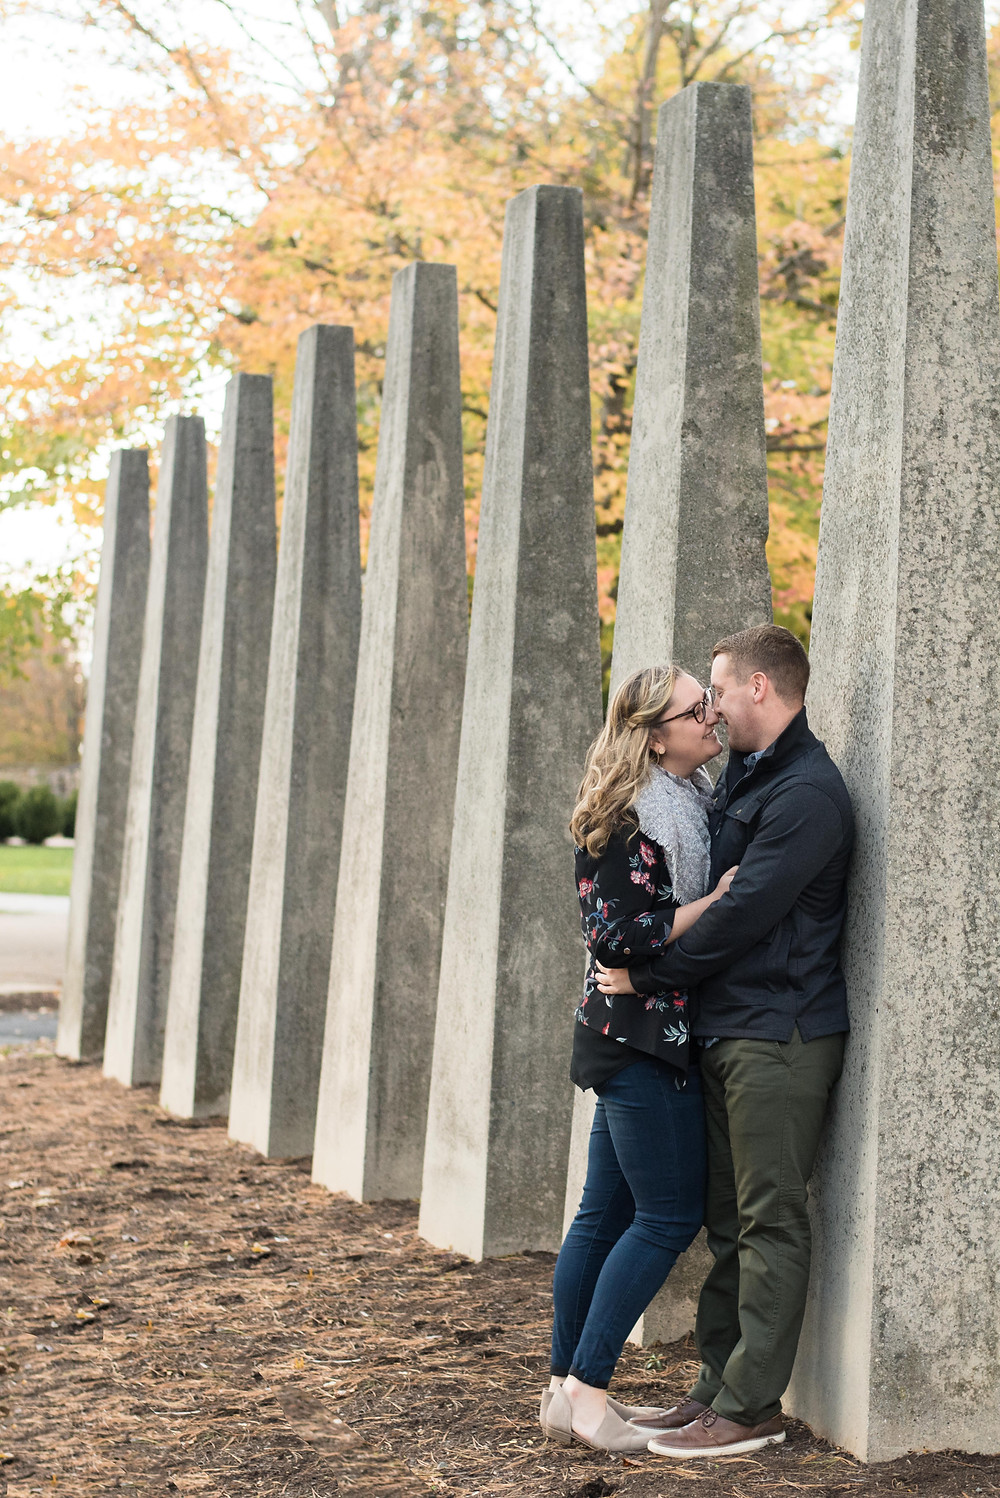 Lebanon Valley College fall Engaged couple photography session with Shannon Ritter Photography flying dutchman wedding